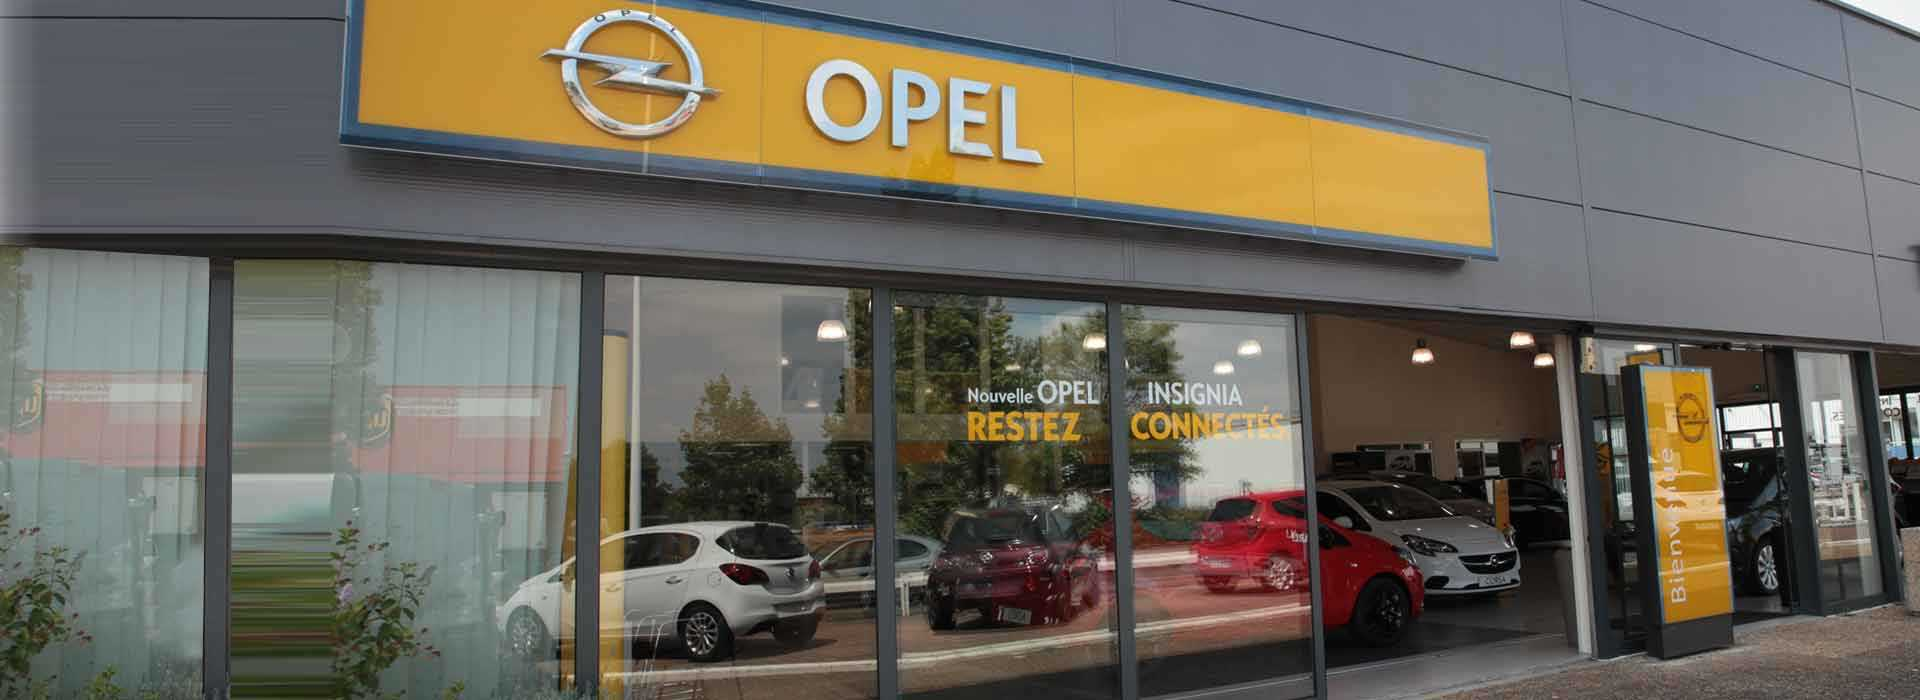 OPEL Tours - Chambray Les Tours